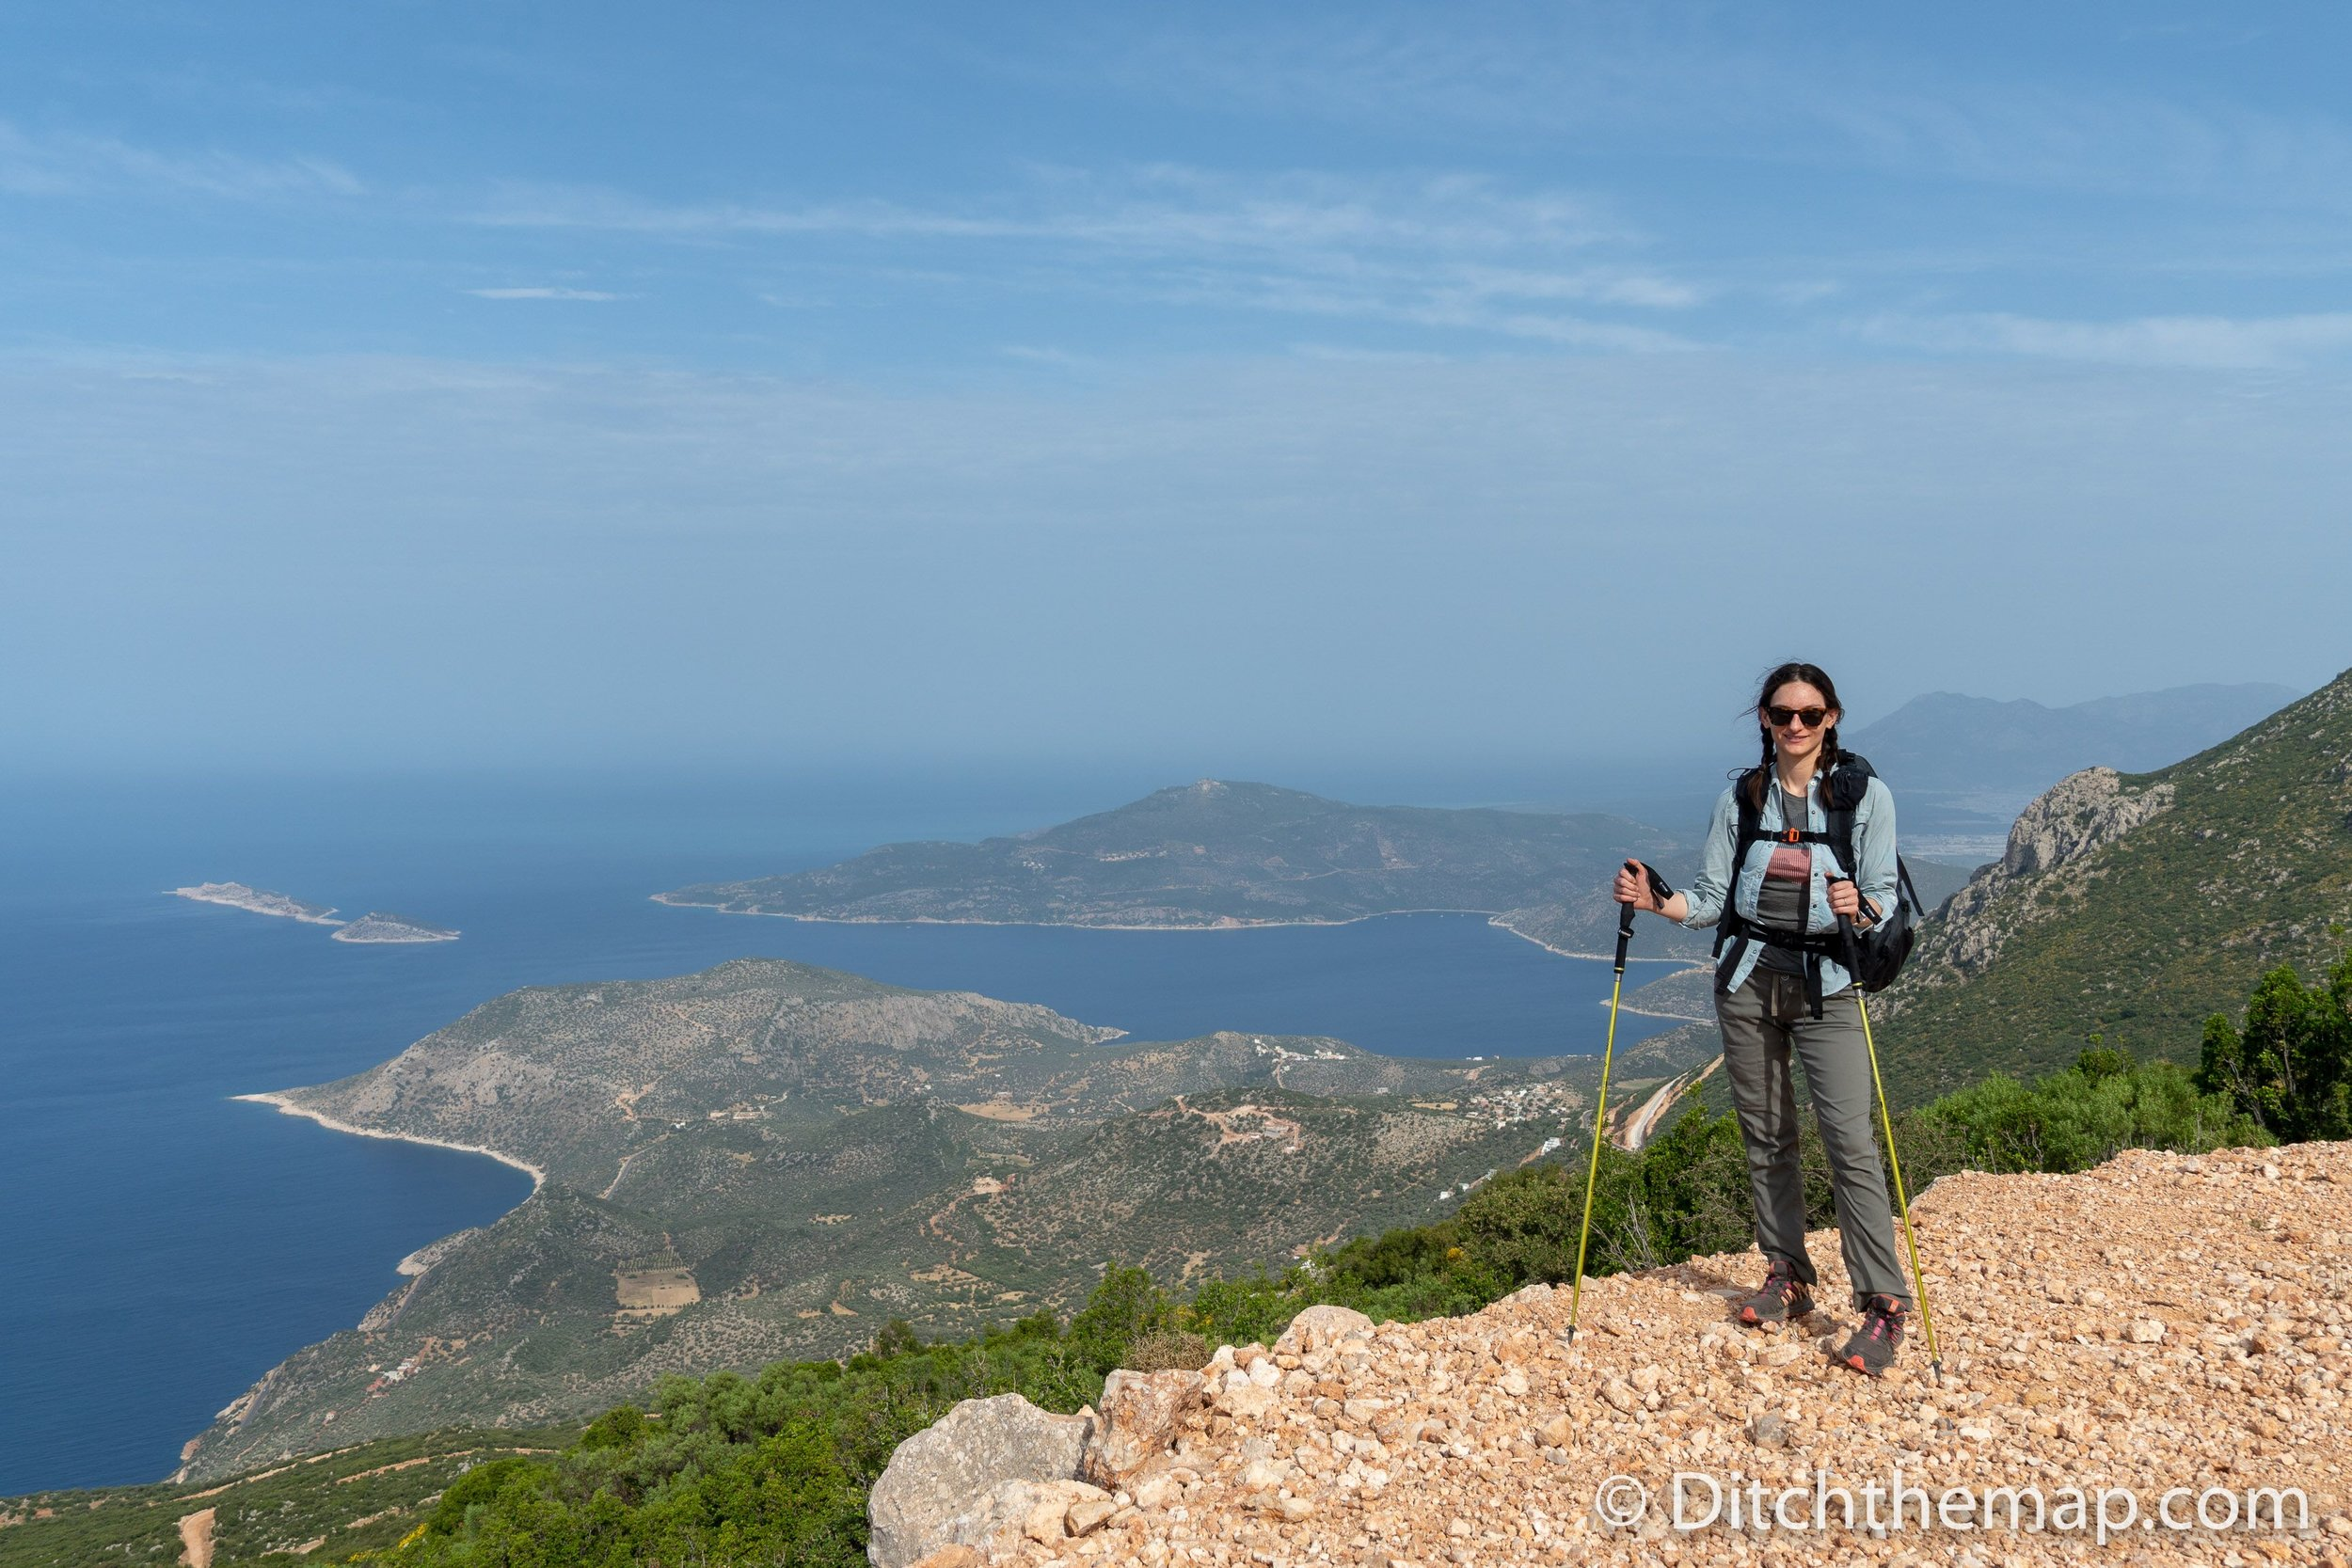 Taking in the views on the Lycian Way